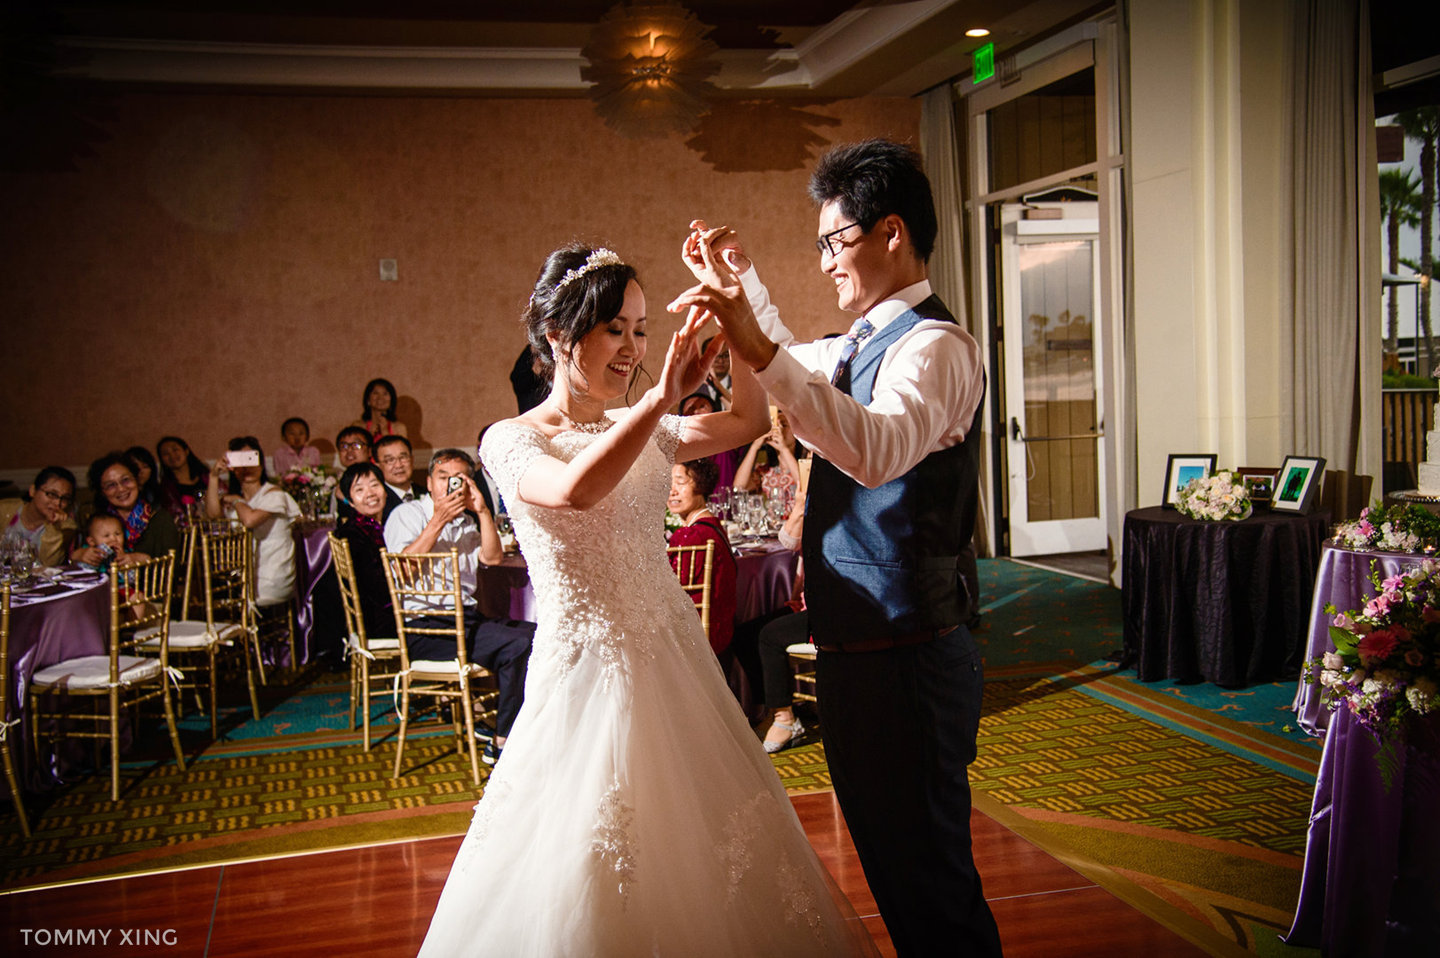 Paradise Point Resort Wedding Xiaolu & Bin San Diego 圣地亚哥婚礼摄影跟拍 Tommy Xing Photography 洛杉矶婚礼婚纱照摄影师 227.jpg